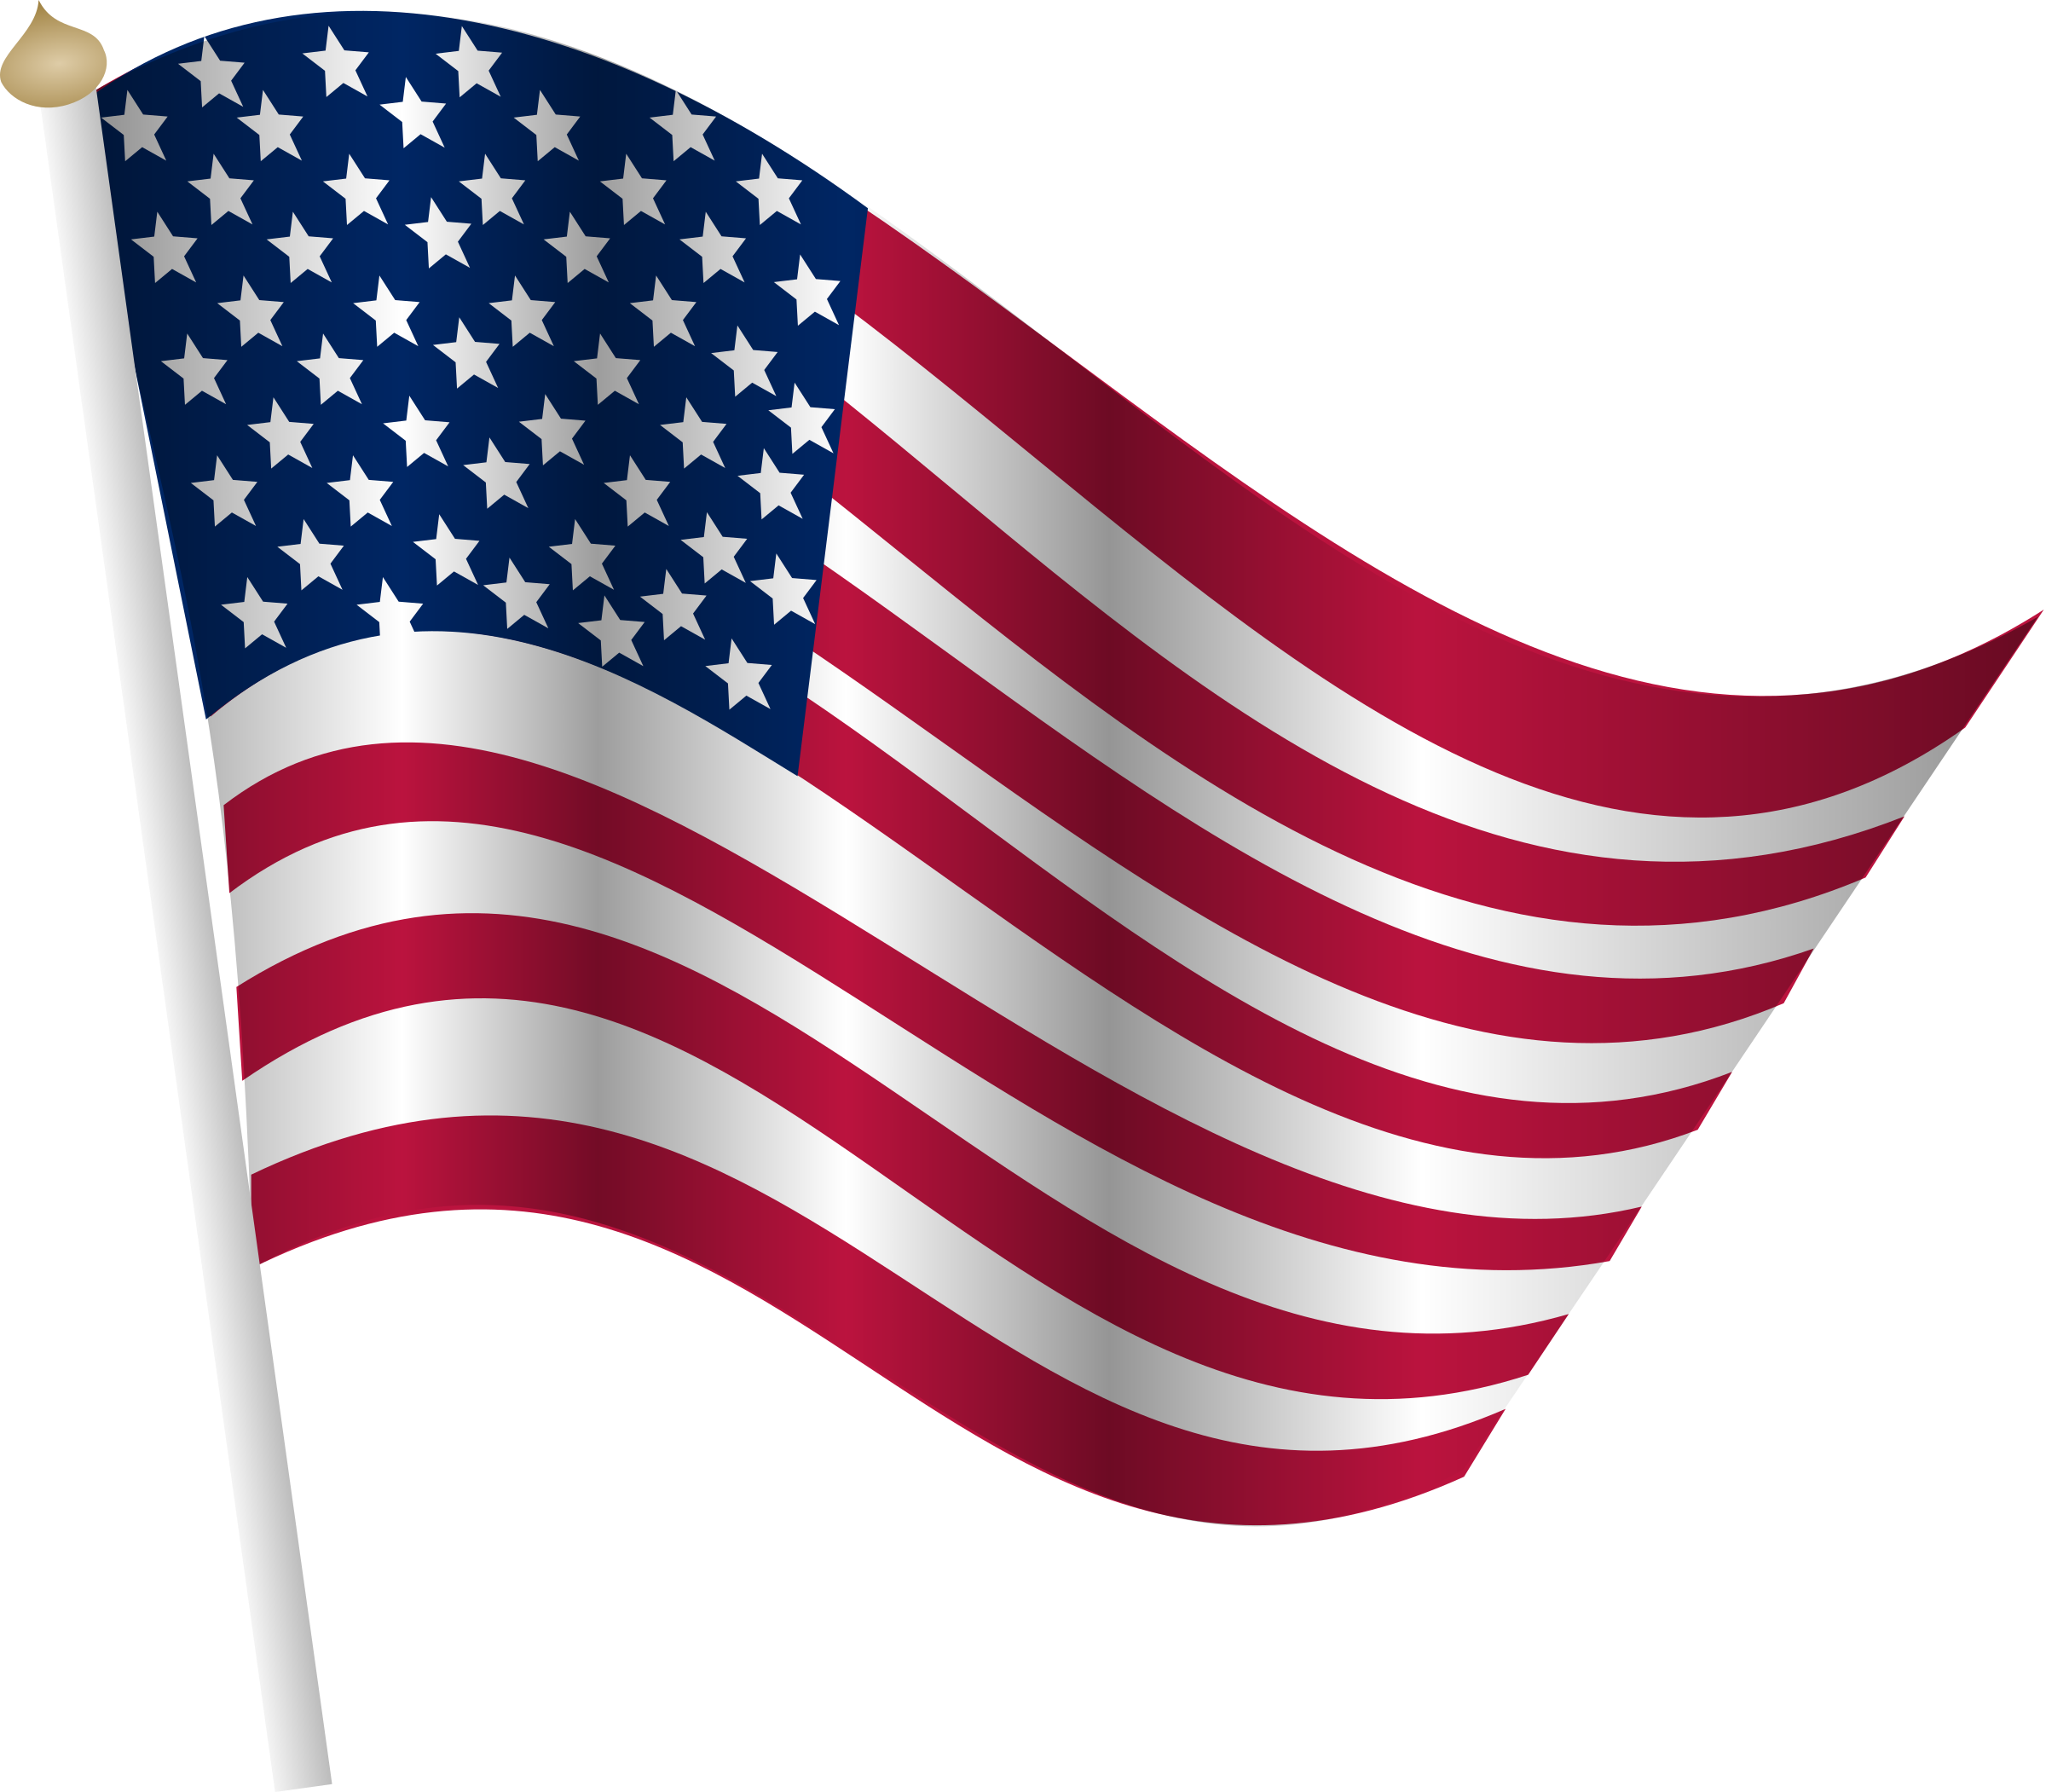 vector freeuse library American clipart american flag. Big image png.